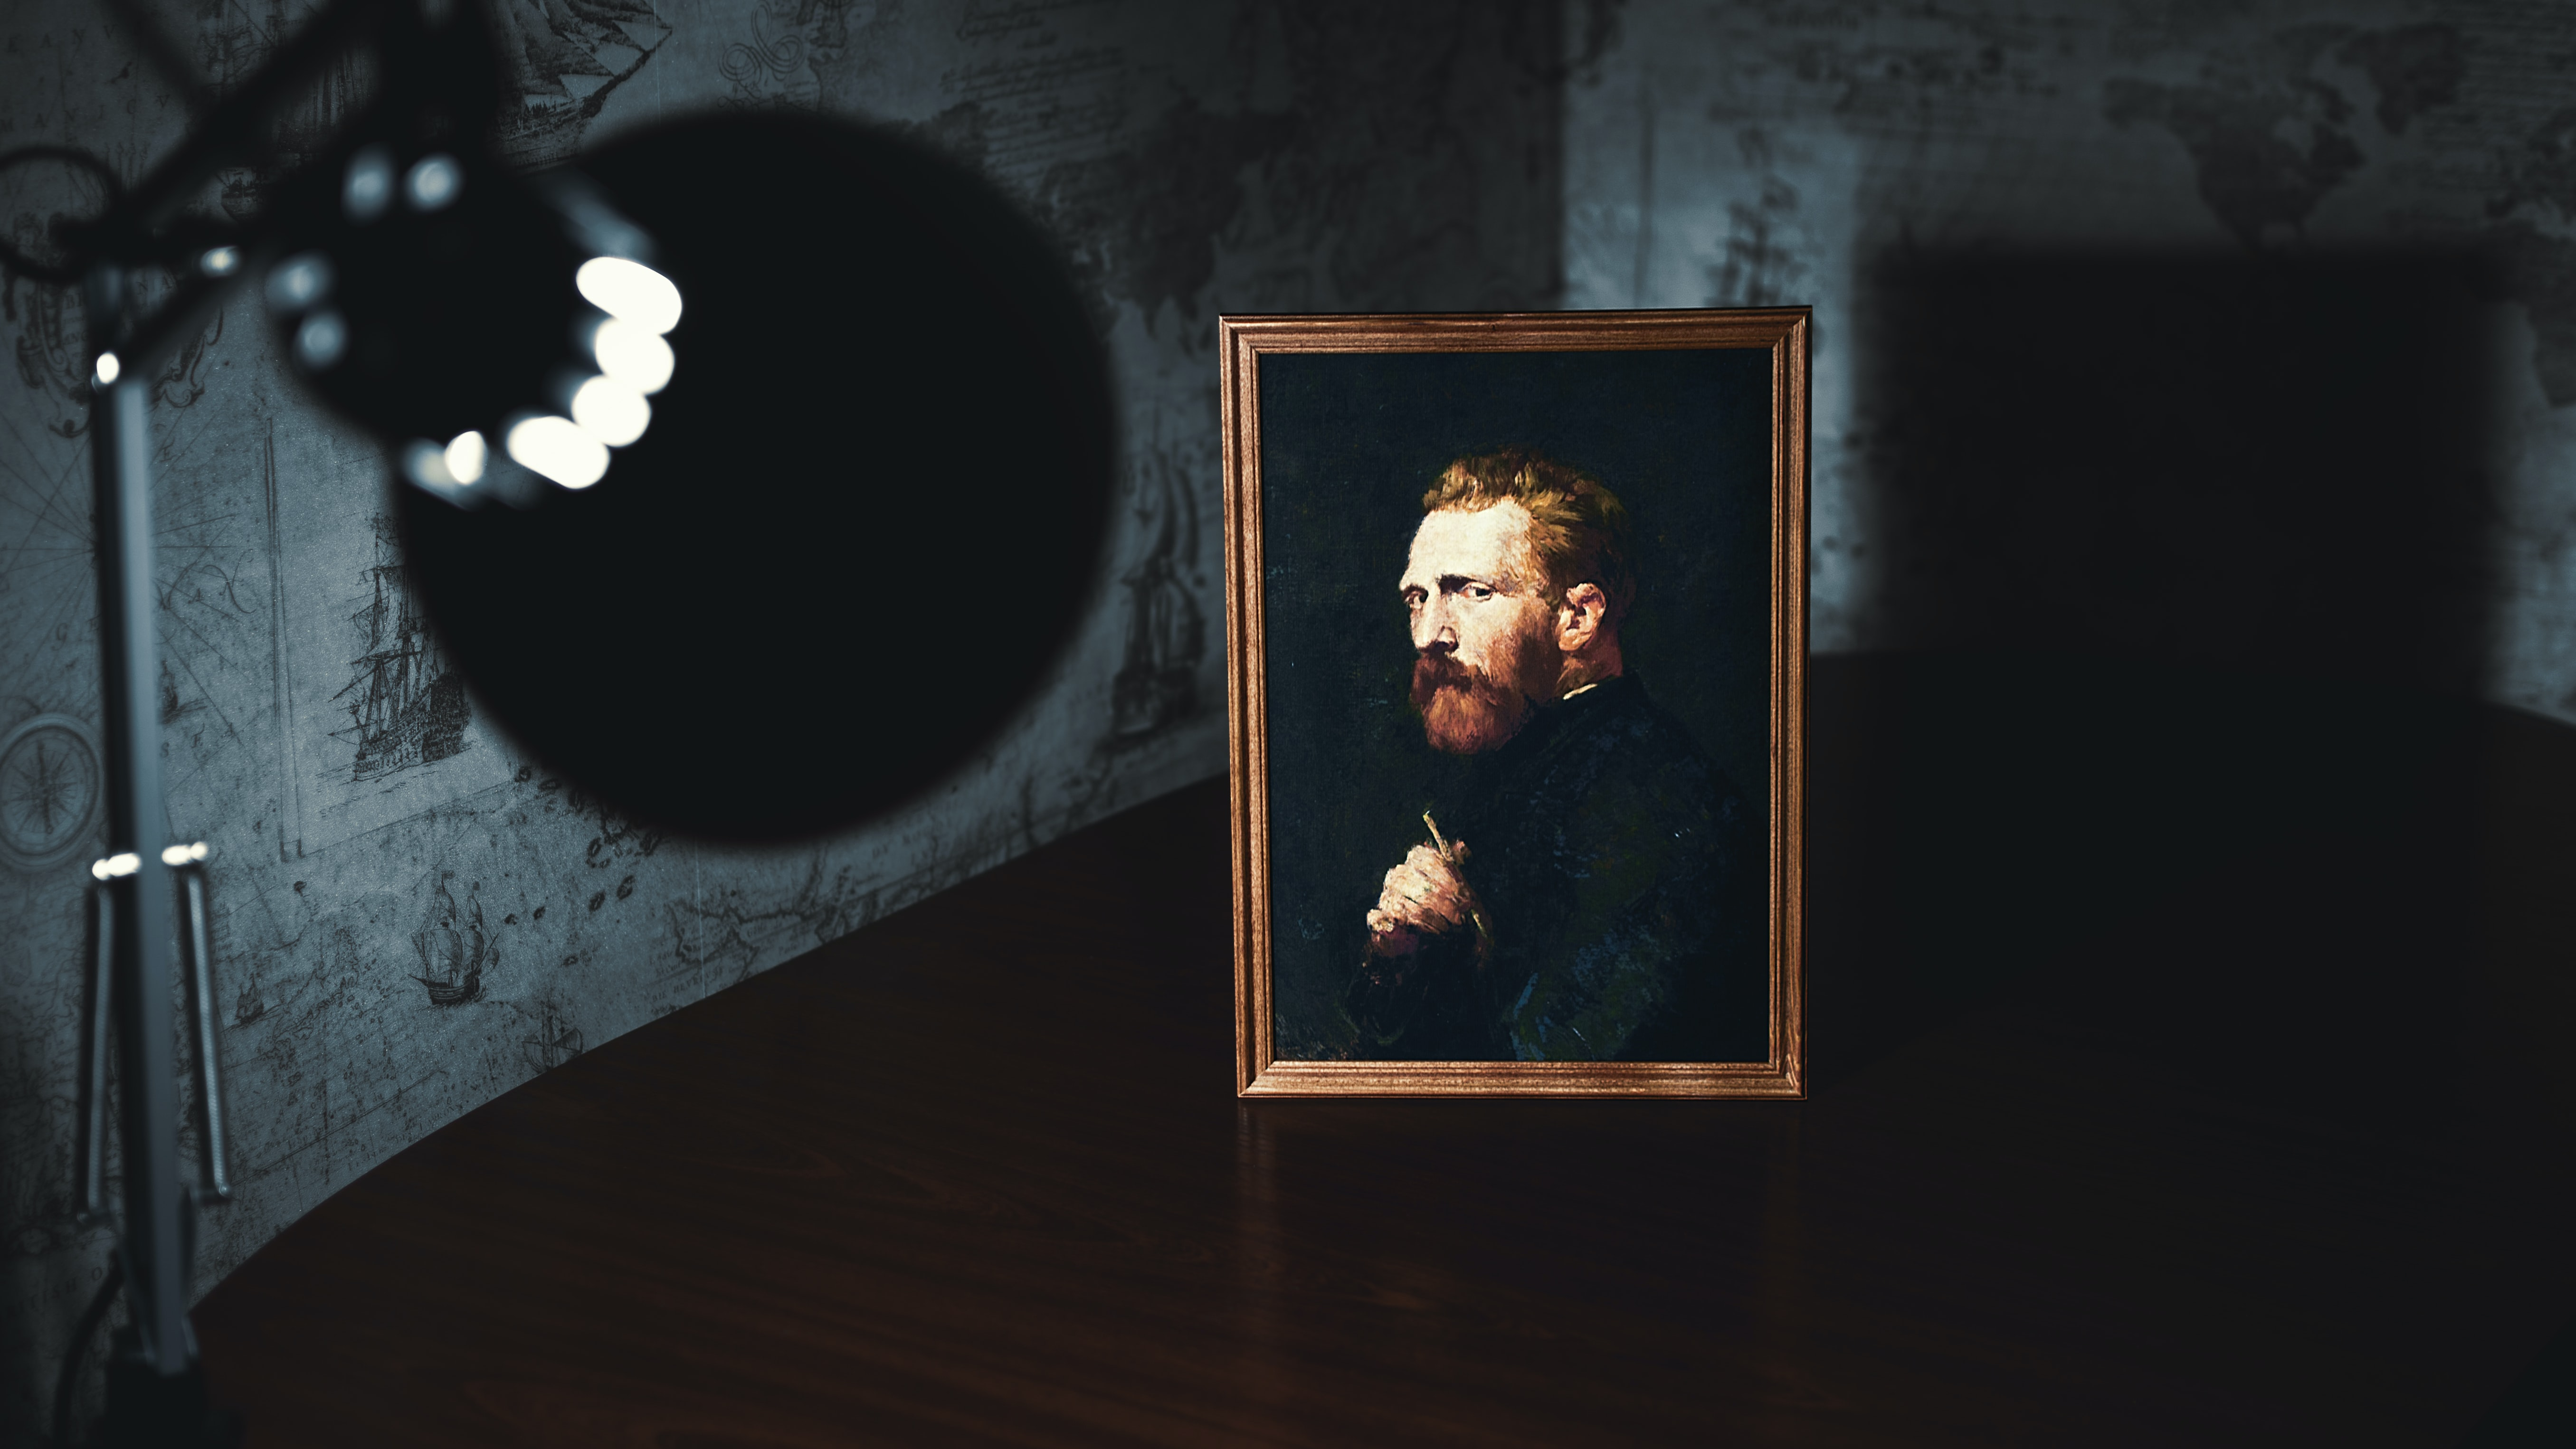 A portrait of Van Gogh on a wooden surface in a dark room